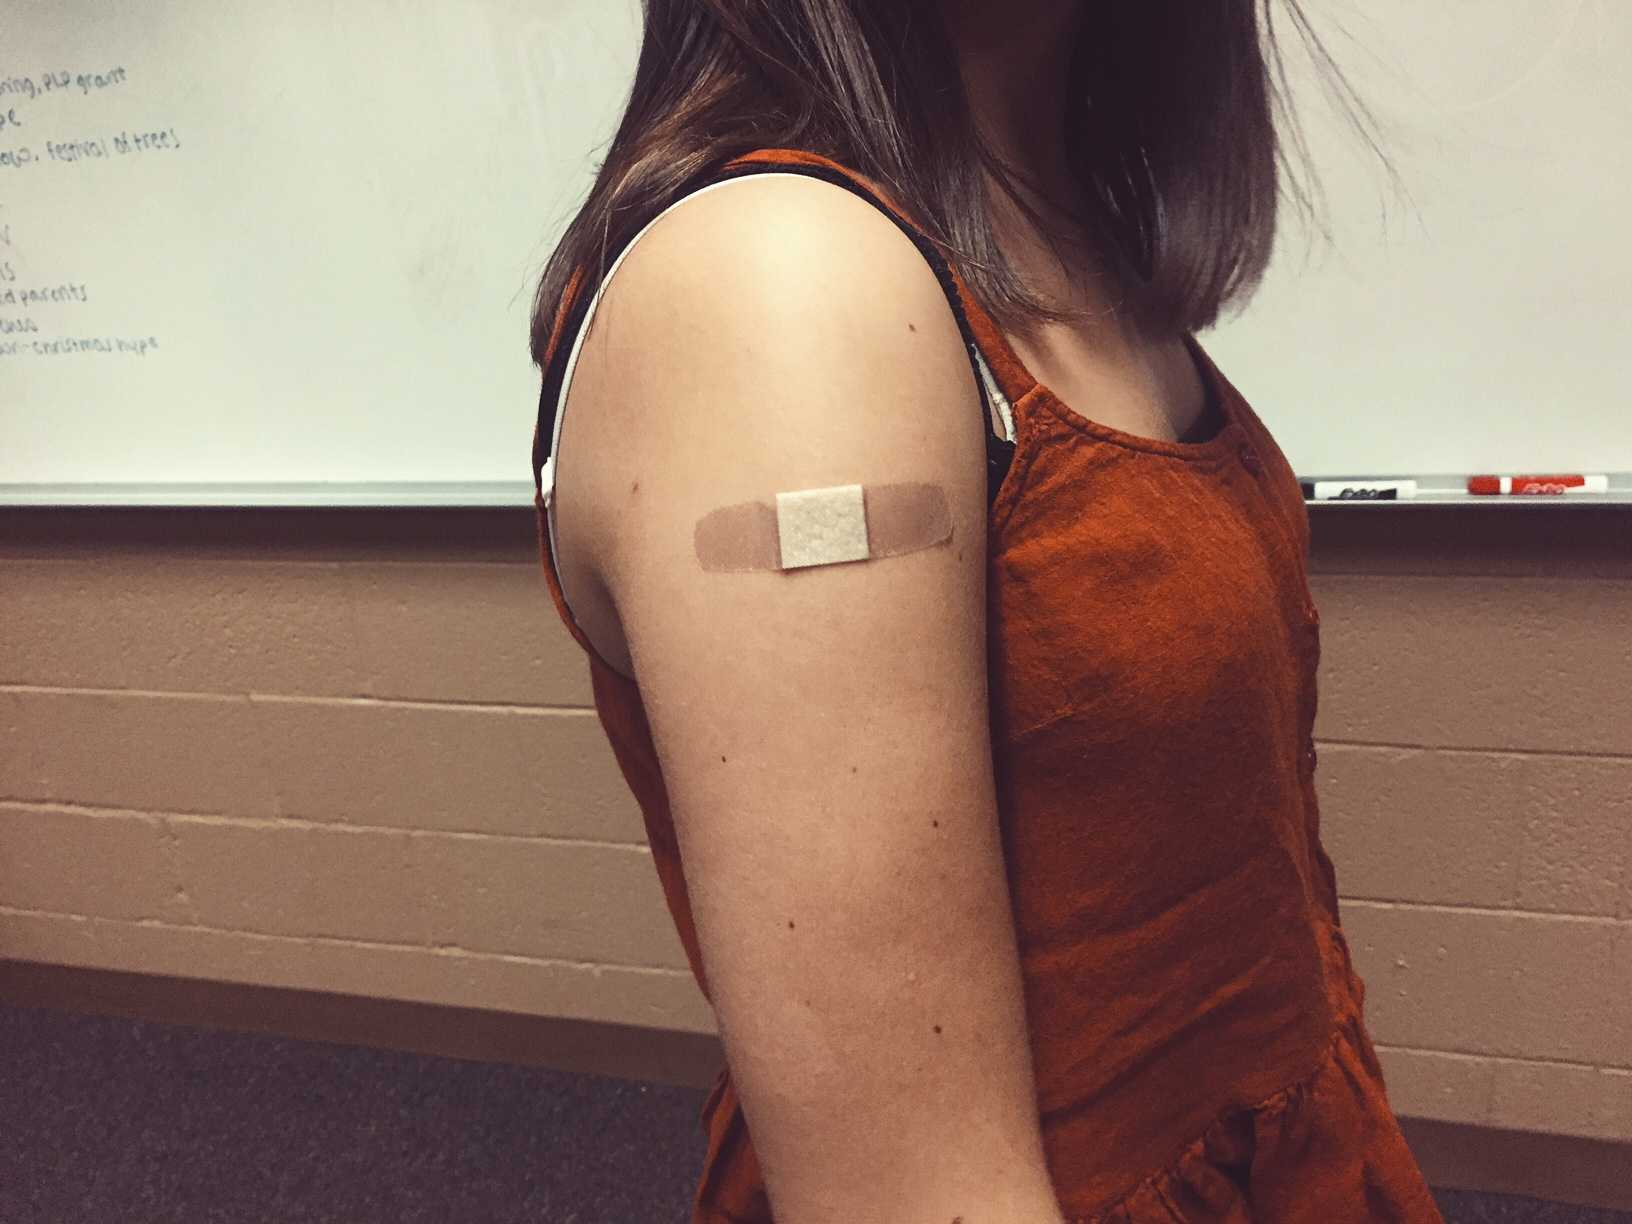 The controversy of vaccinations returns as winter arrives and flu season returns.